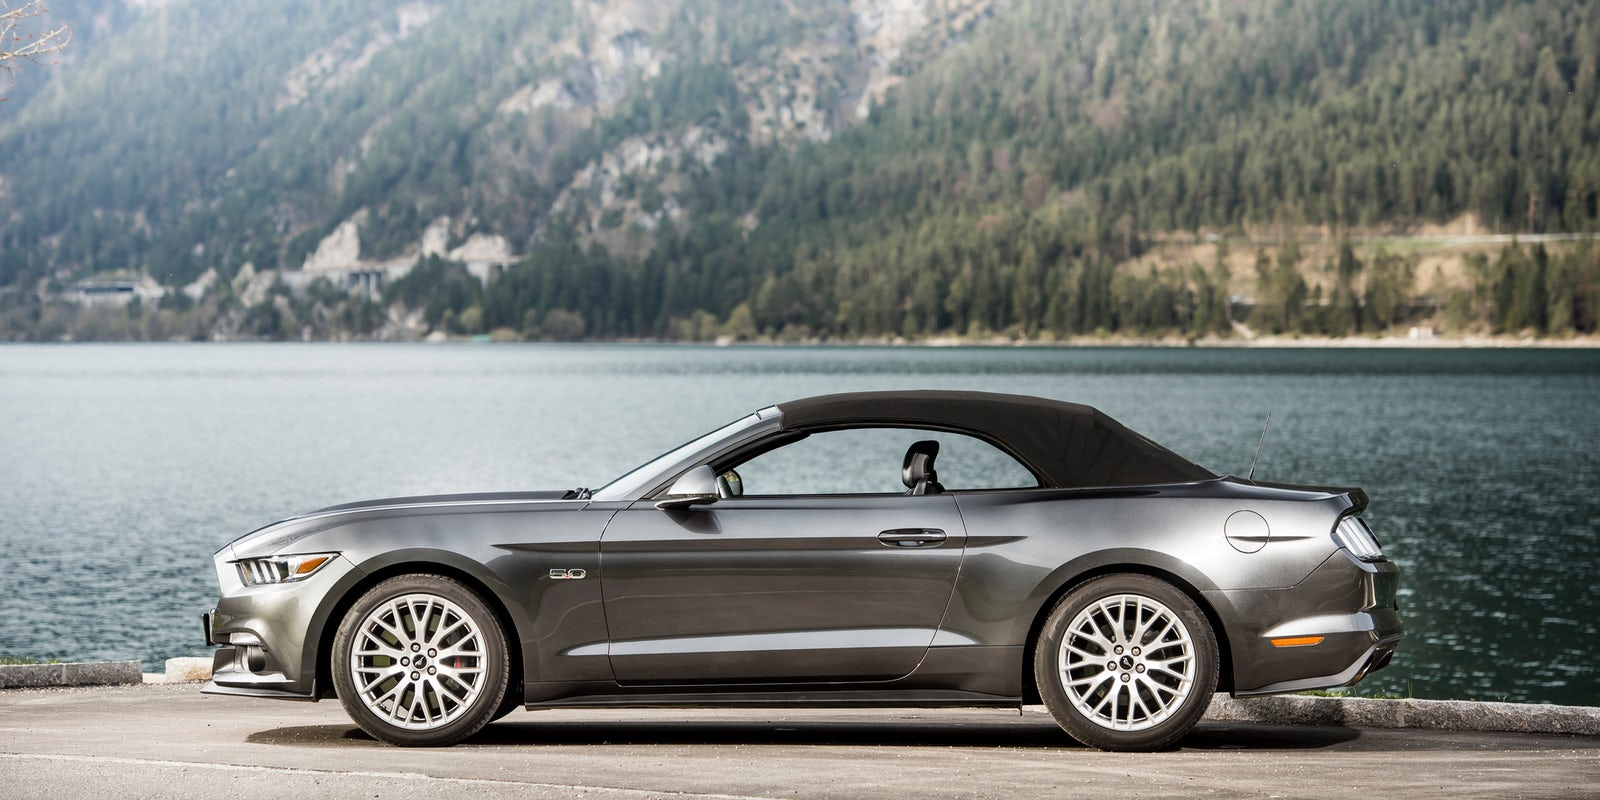 Ford Mustang Convertible 2017 Review | carwow